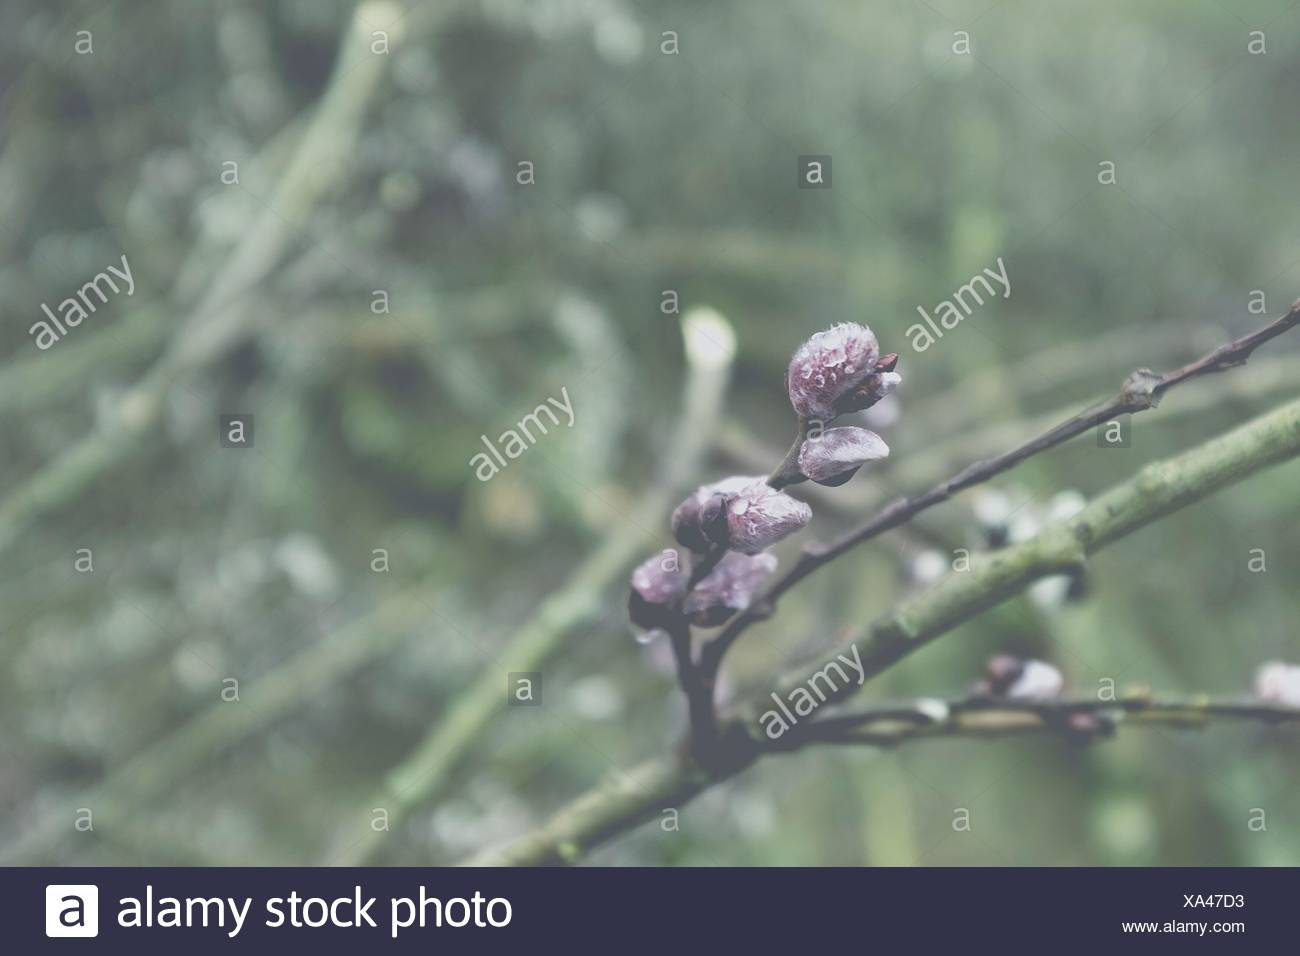 Close-Up Of Plants Against Blurred Background - Stock Image